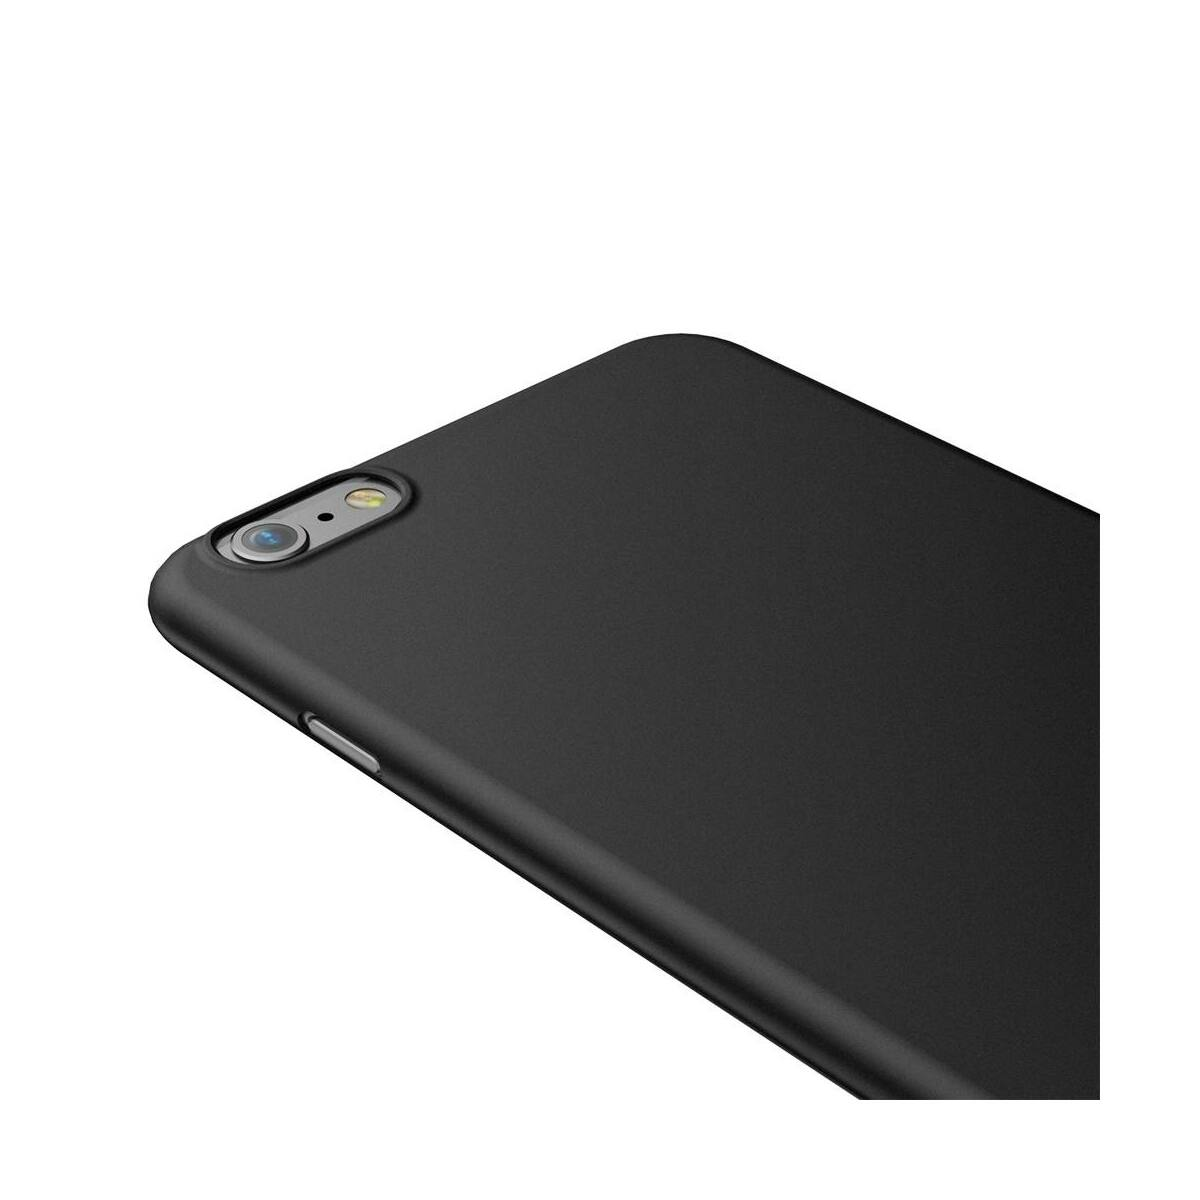 Baseus iPhone 6/6s tok, Wing, fekete (WIAPIPH6S-E1A)